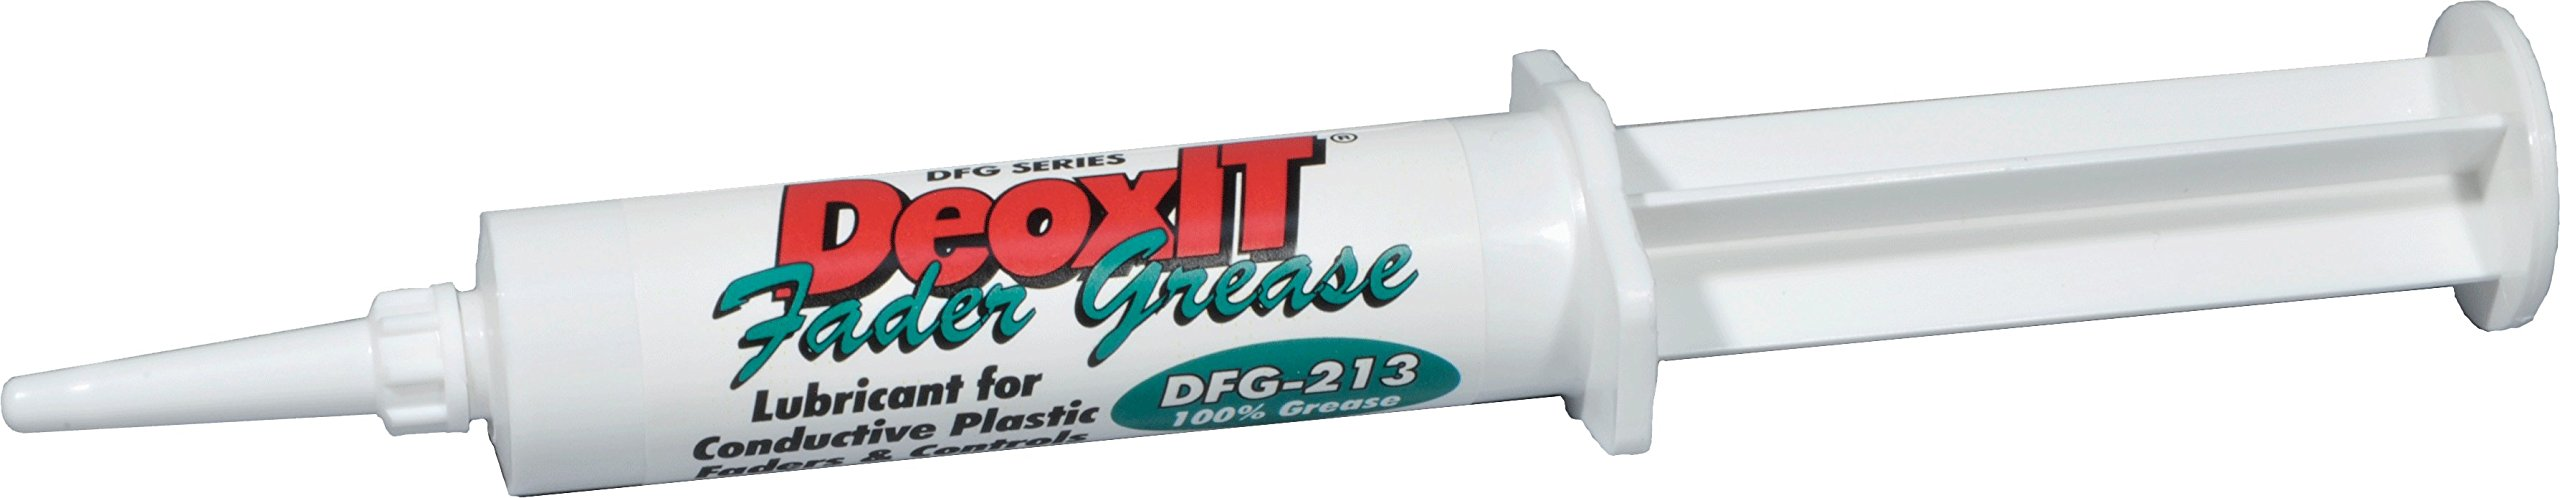 DeoxIT FaderGrease, 8g - DFG-213-8G by CAIG Laboratories